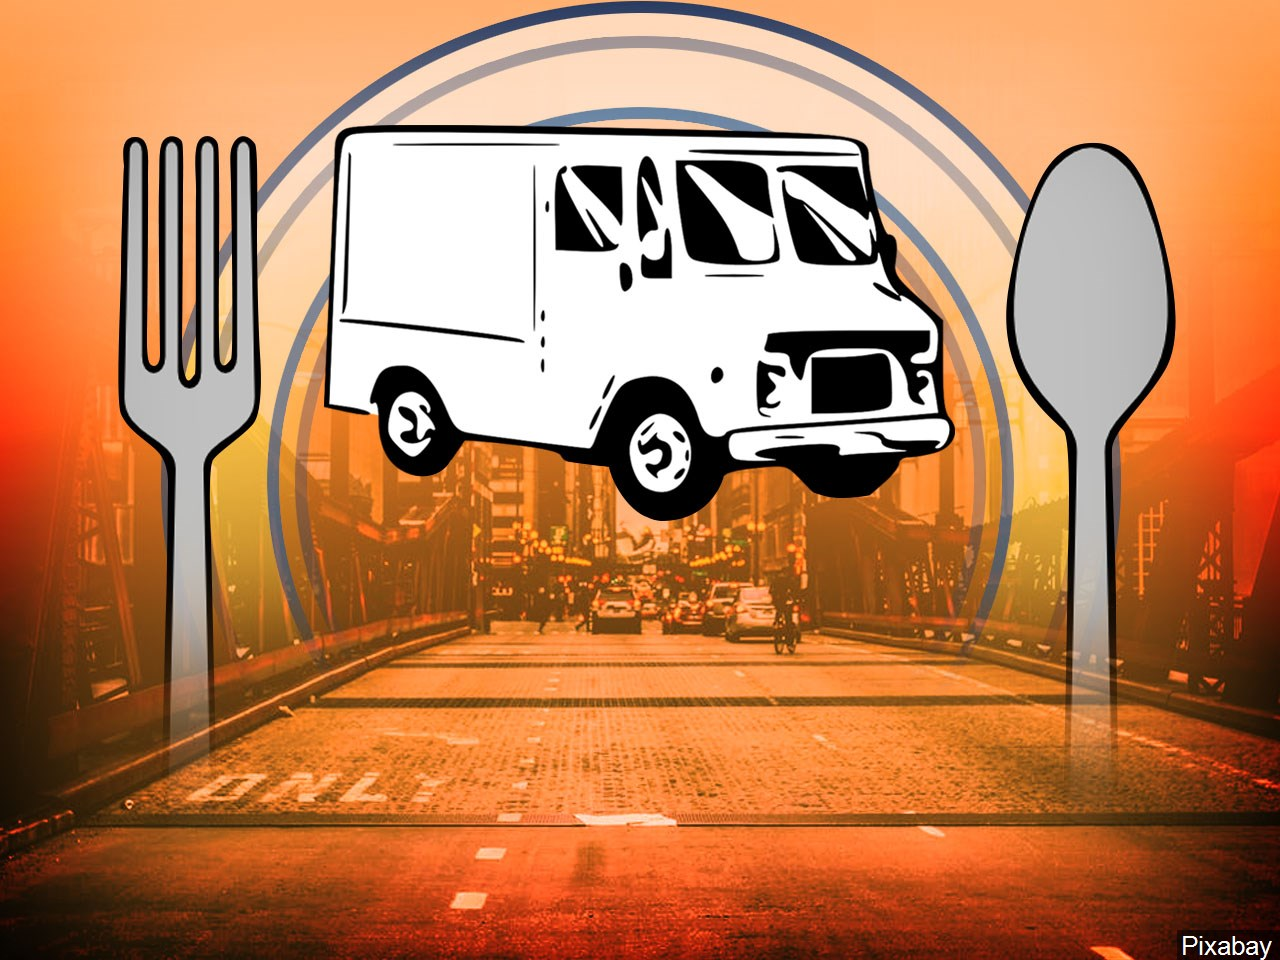 Food trucks could become the new fad